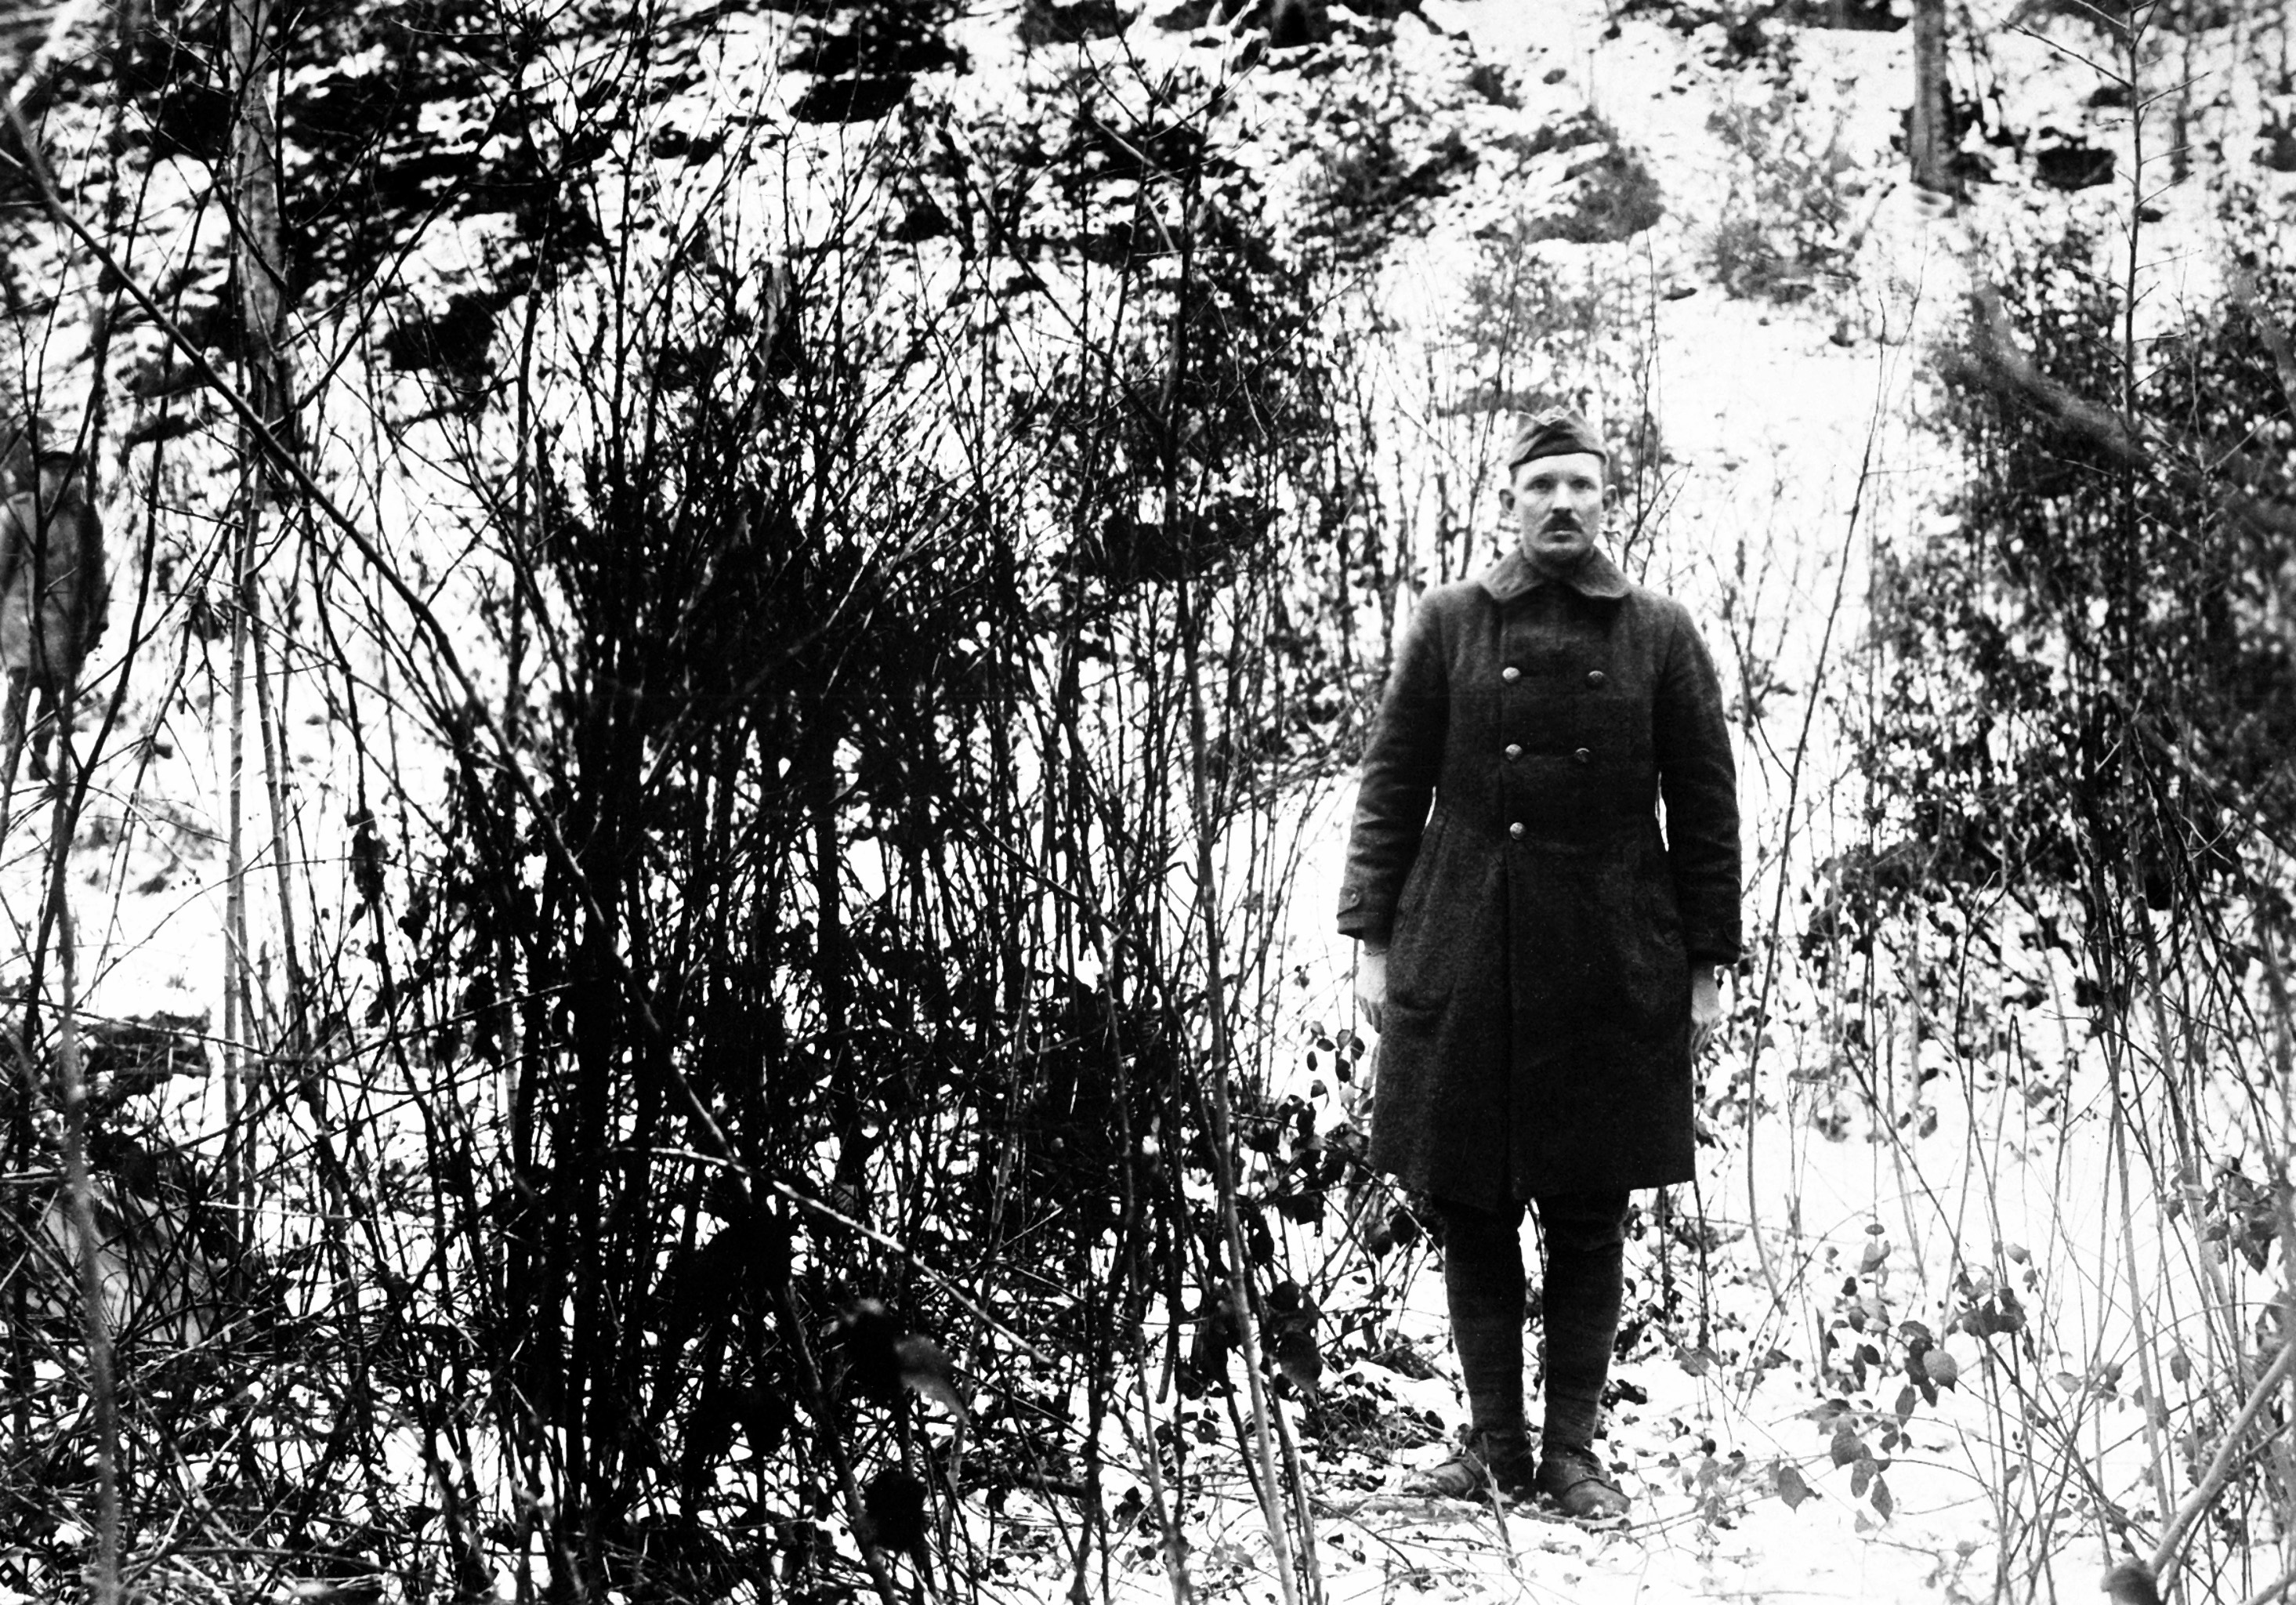 Sgt. Alvin York stands on the hill on which his heroic actions took place.